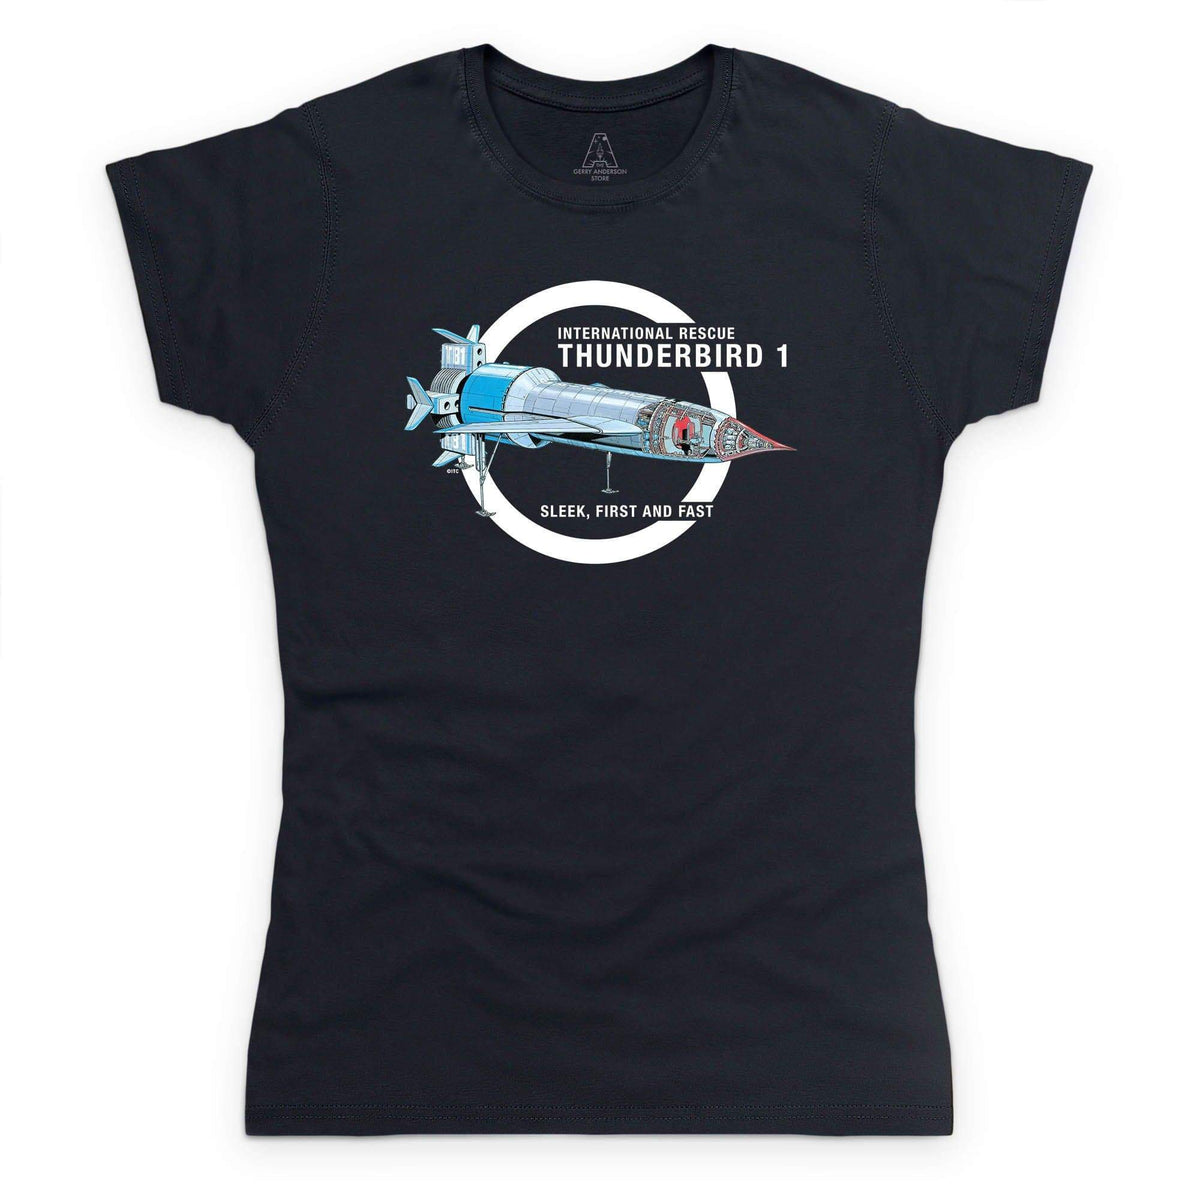 Thunderbirds: Thunderbird 1 Cutaway Women's T-Shirt [Official & Exclusive] - The Gerry Anderson Store